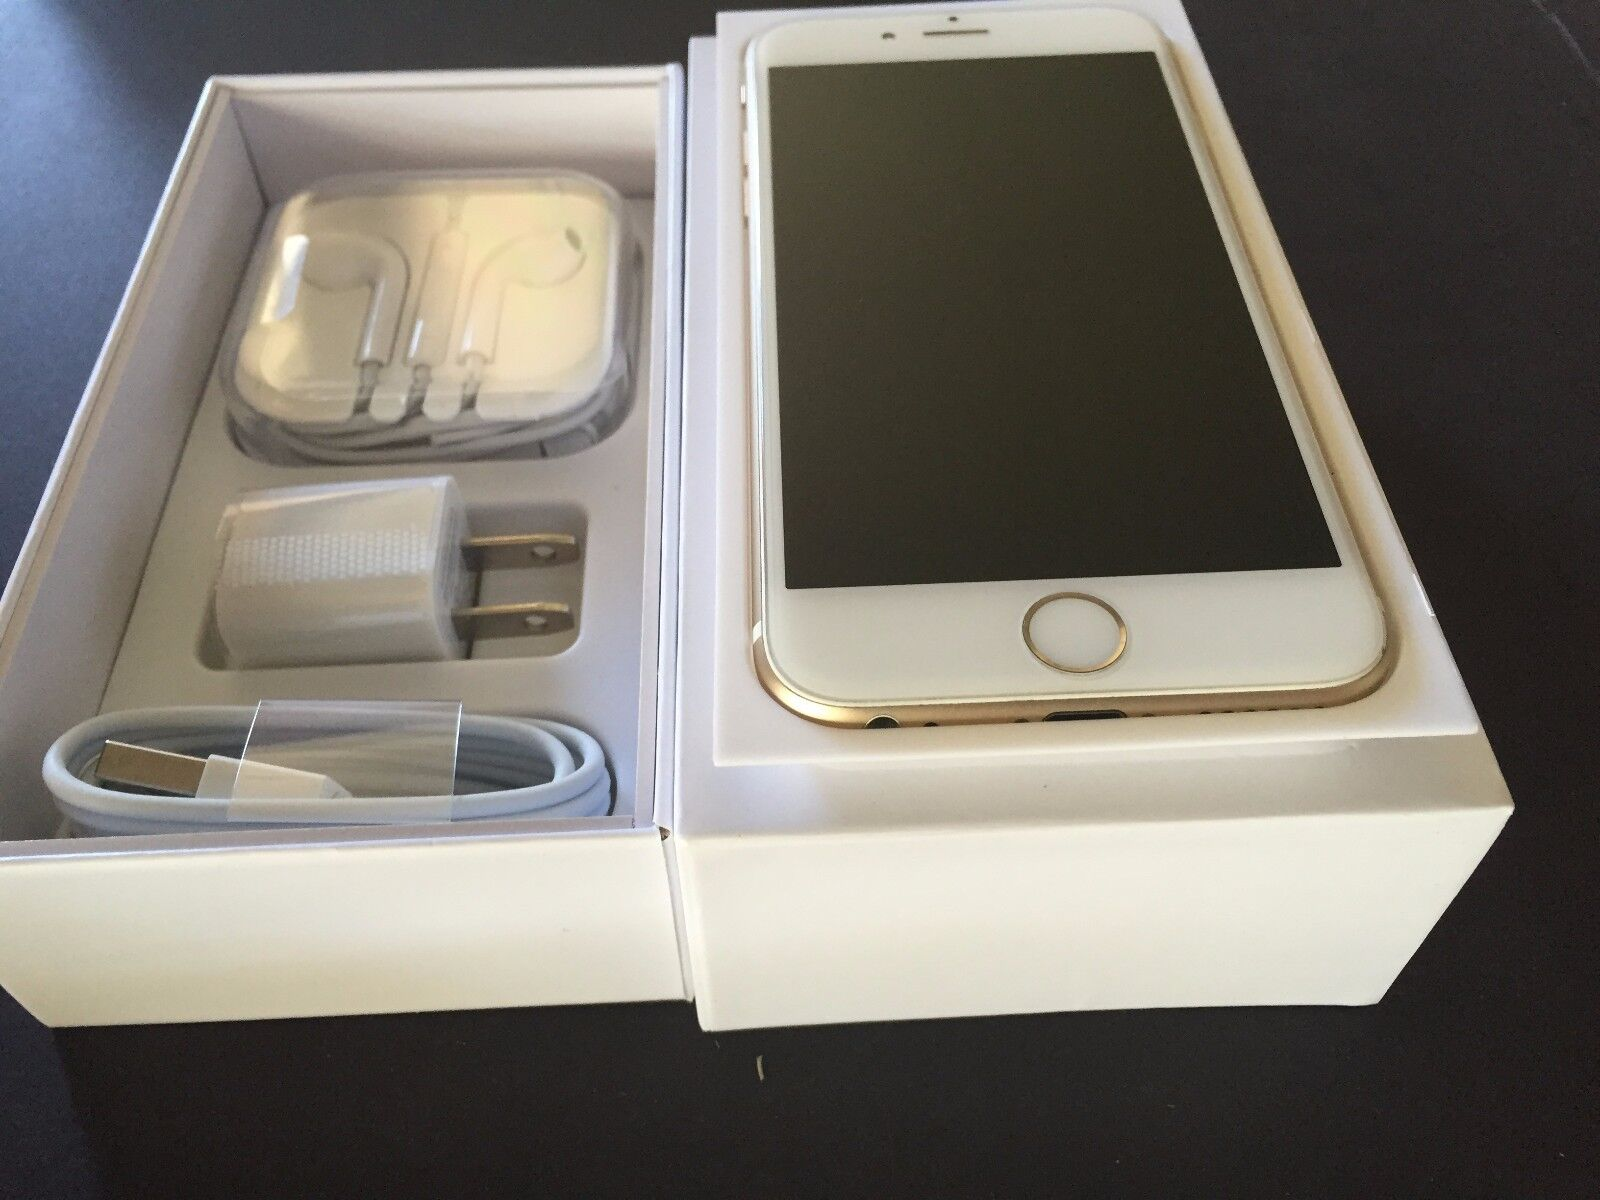 Iphone 6 plus and iphone 6 gold